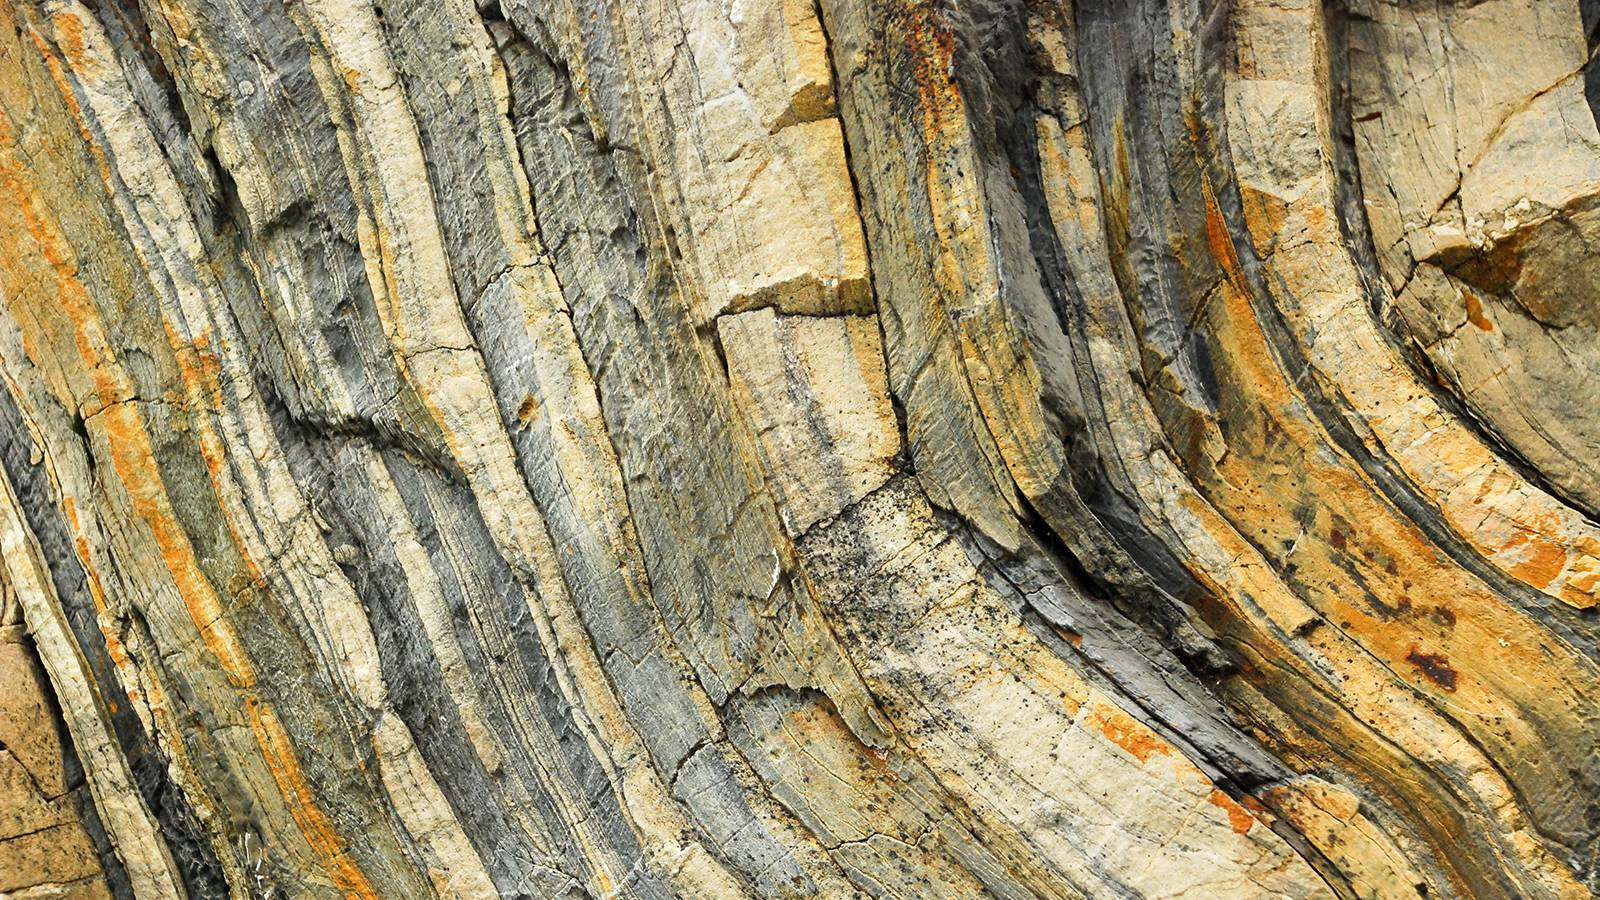 geology wallpaper hd - photo #13